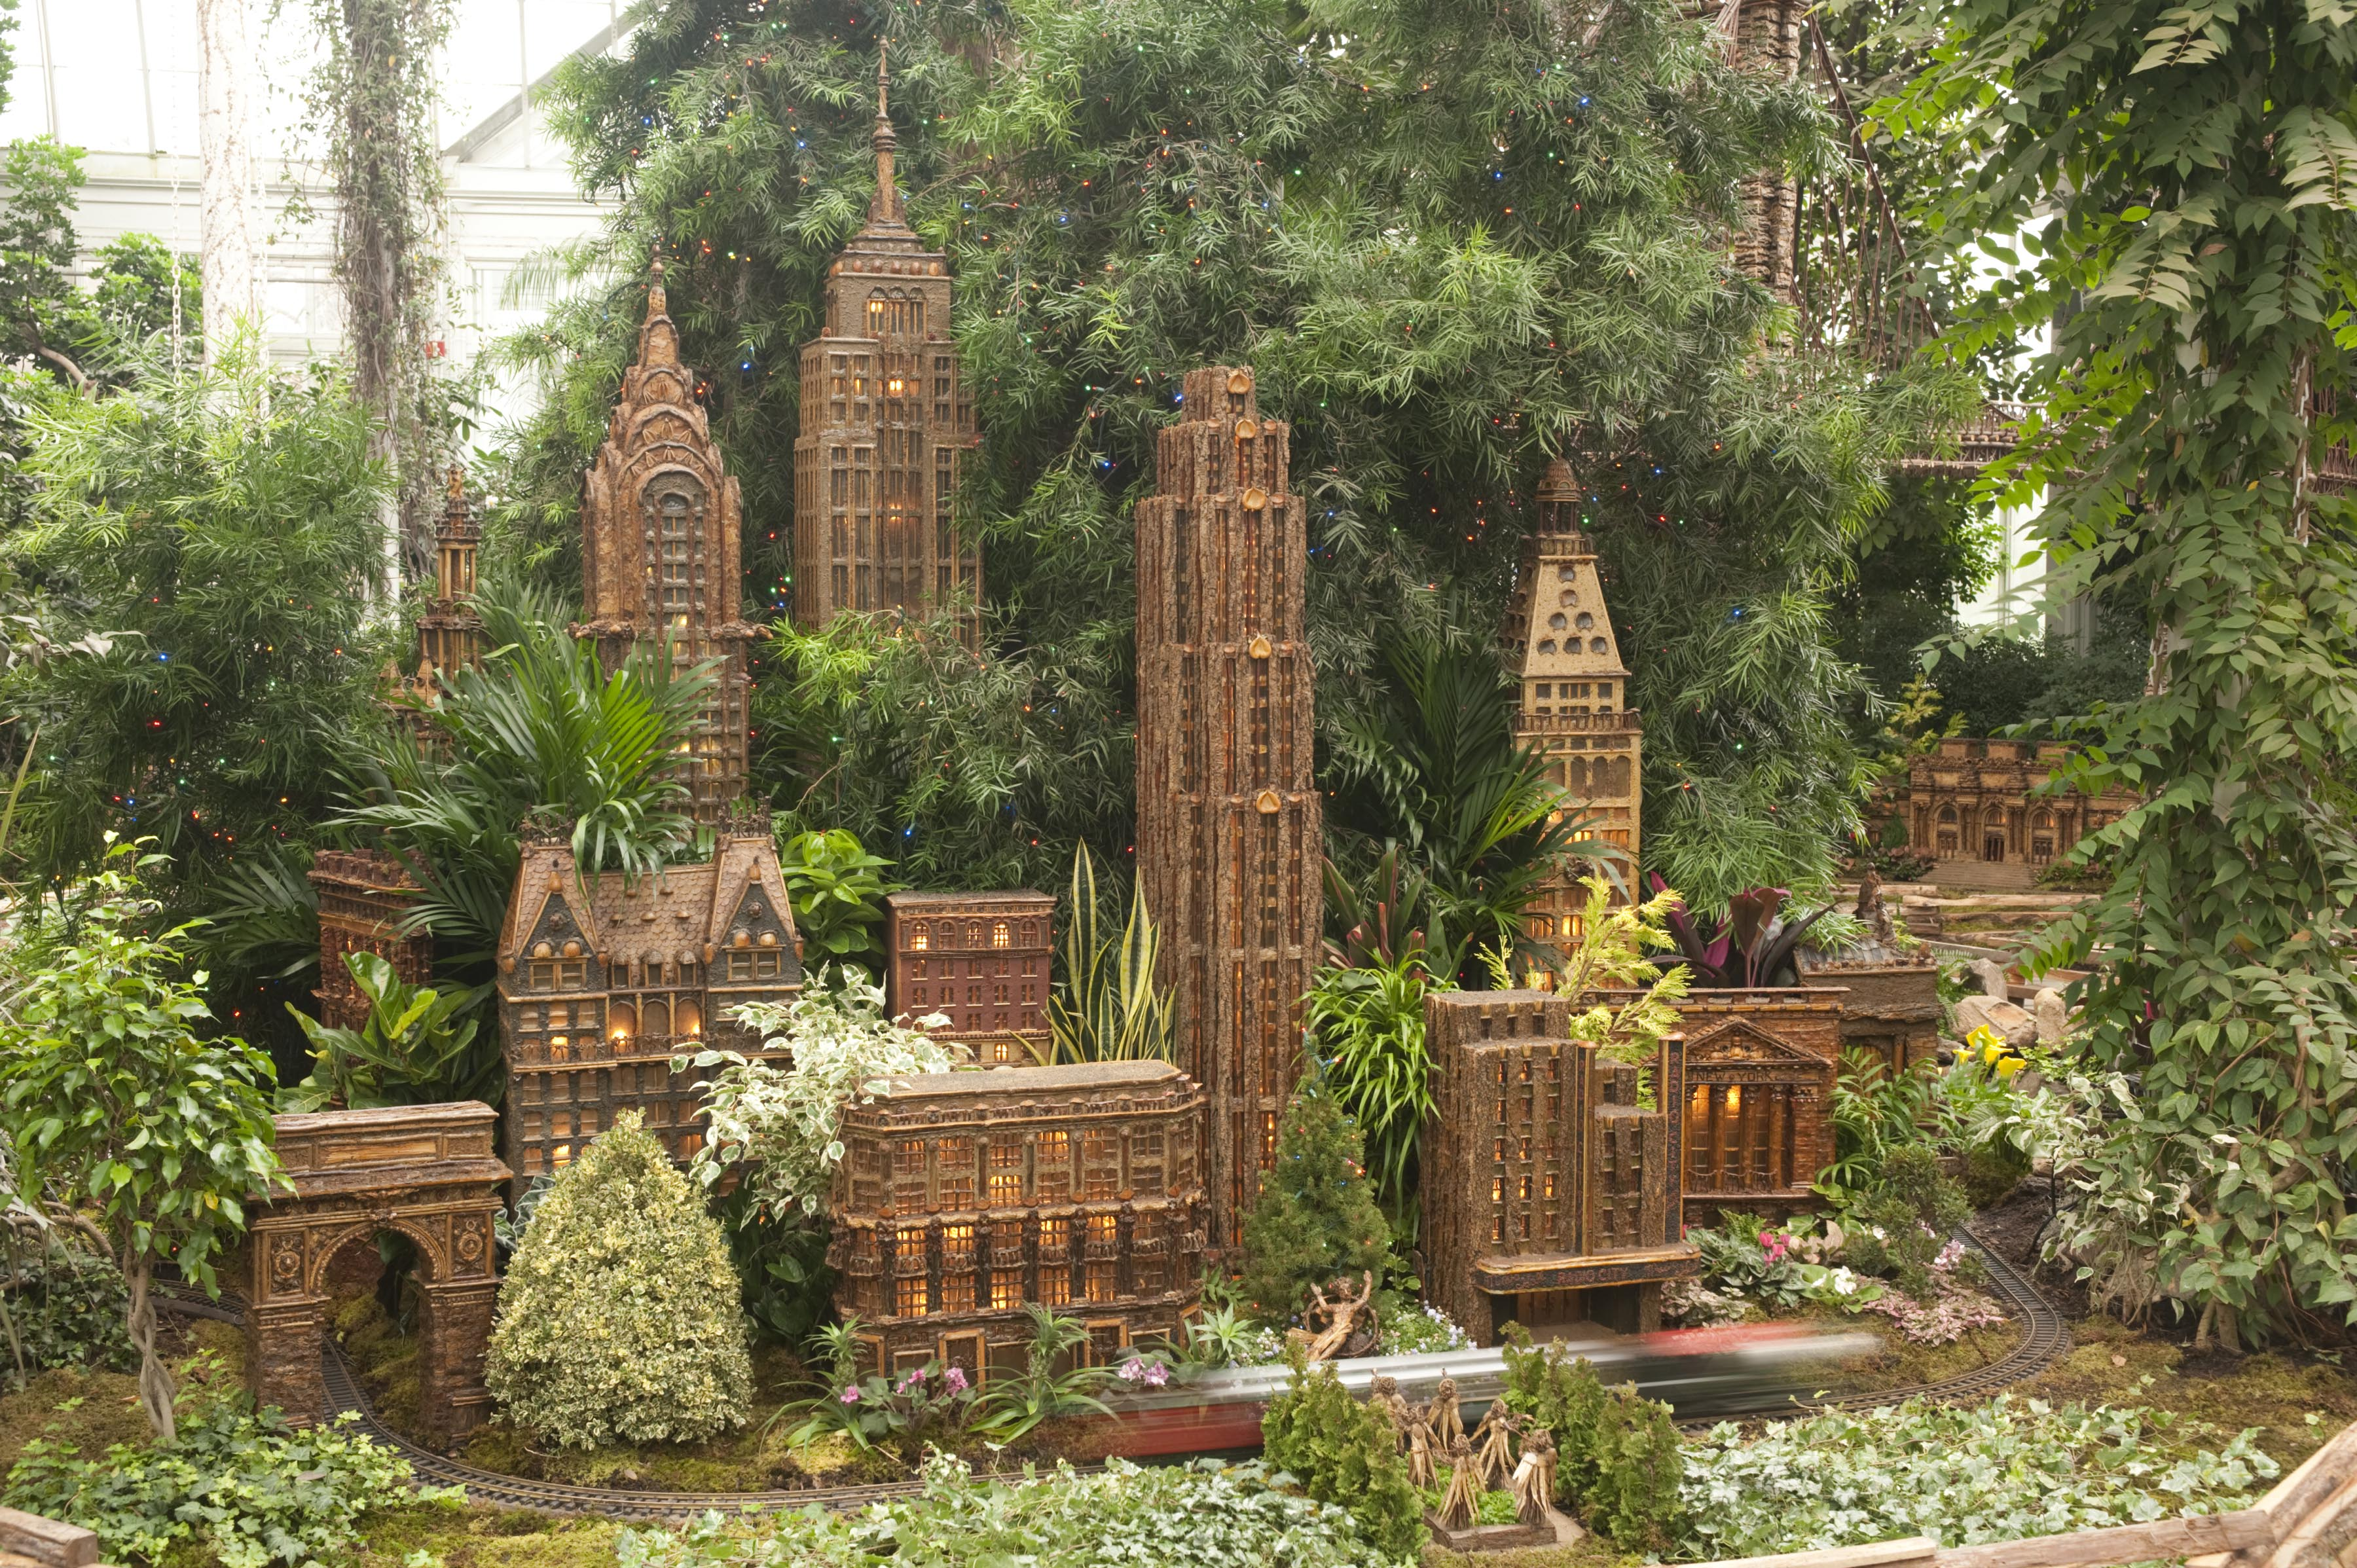 New york botanical garden galo magazine Botanical garden train show